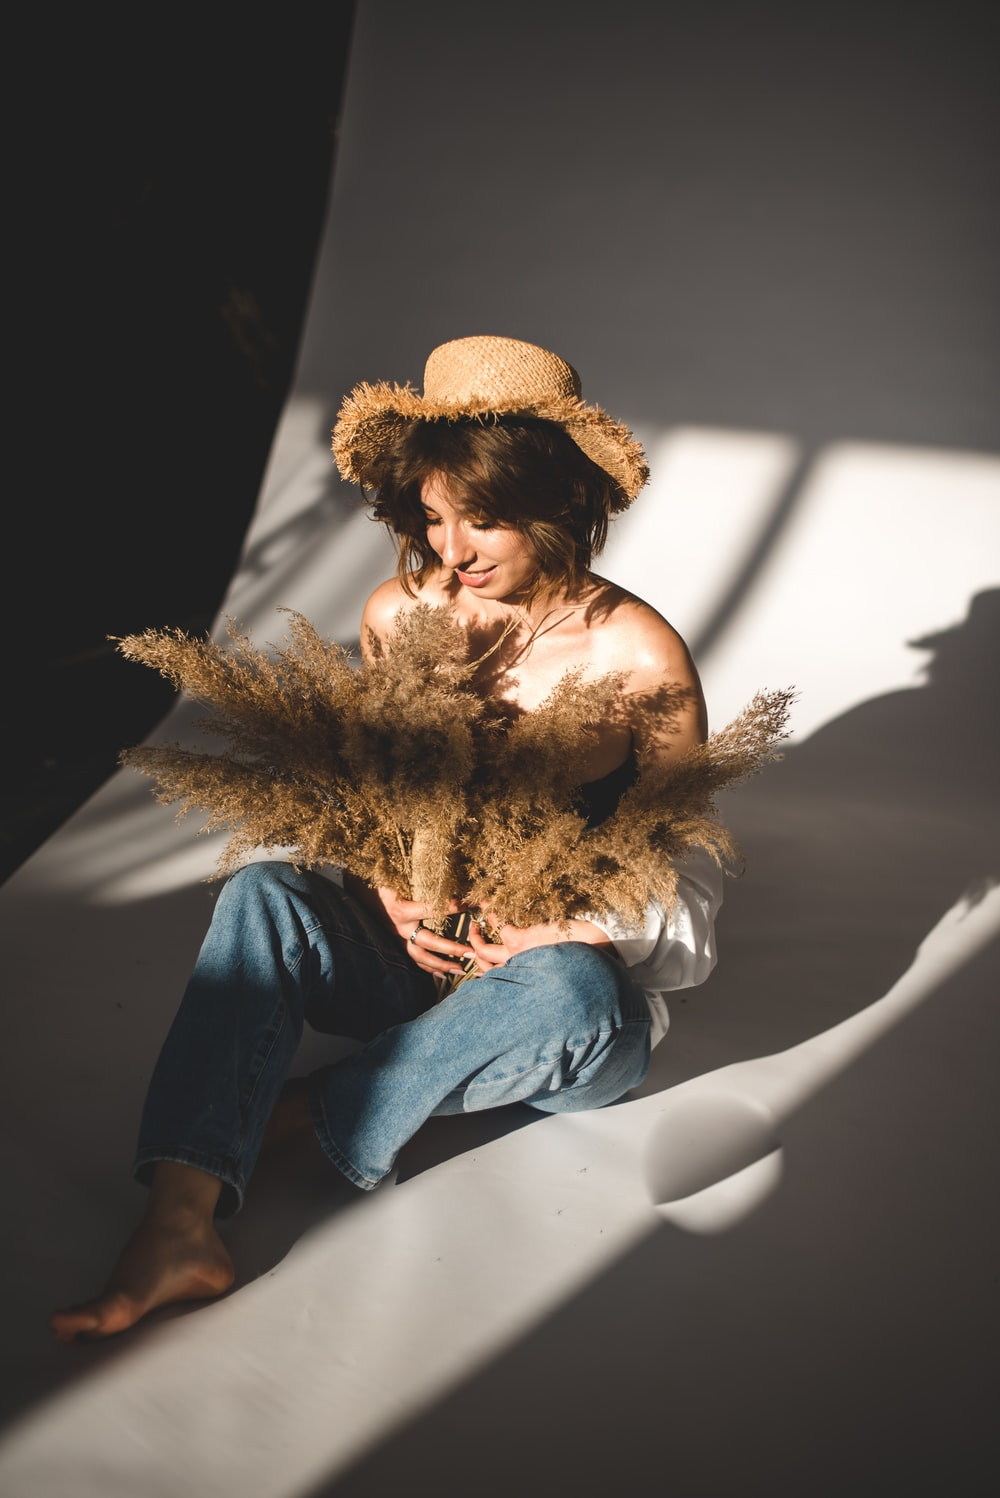 woman in blue denim jeans wearing brown sun hat sitting on white chair